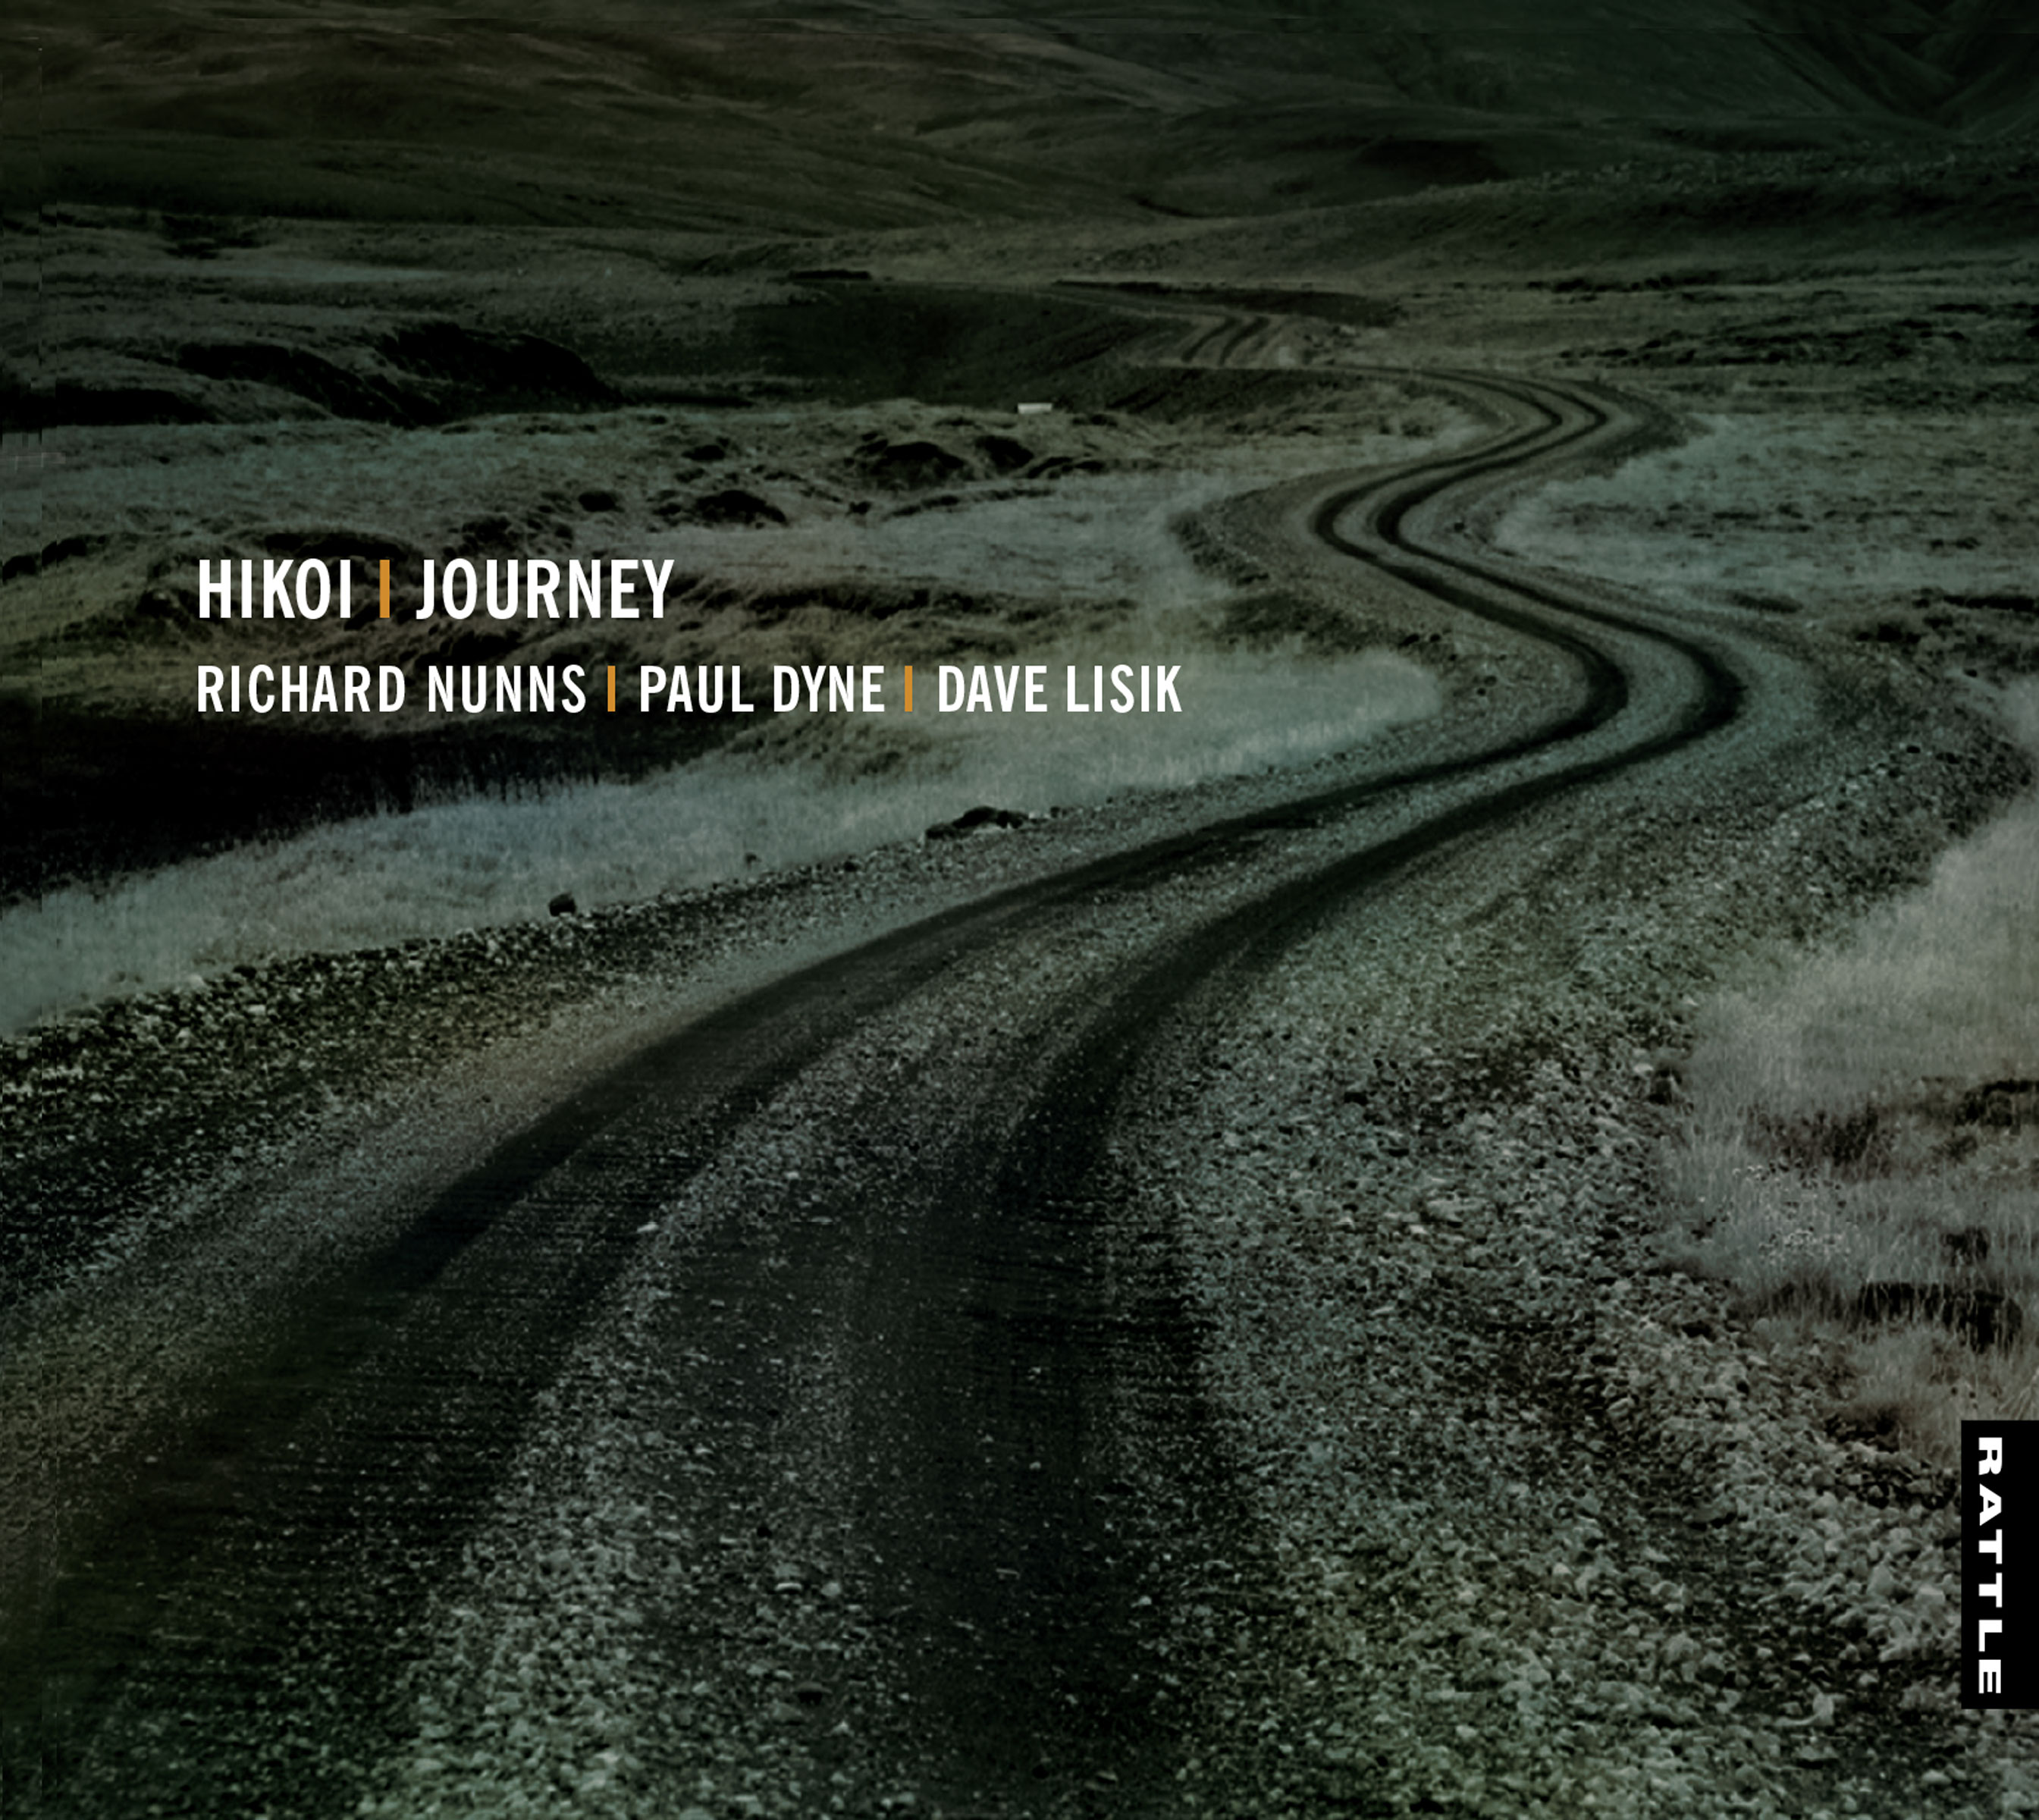 Richard Nunns, Paul Dyne, Dave Lisik | Hikoi / Journey - downloadable MP3 ALBUM